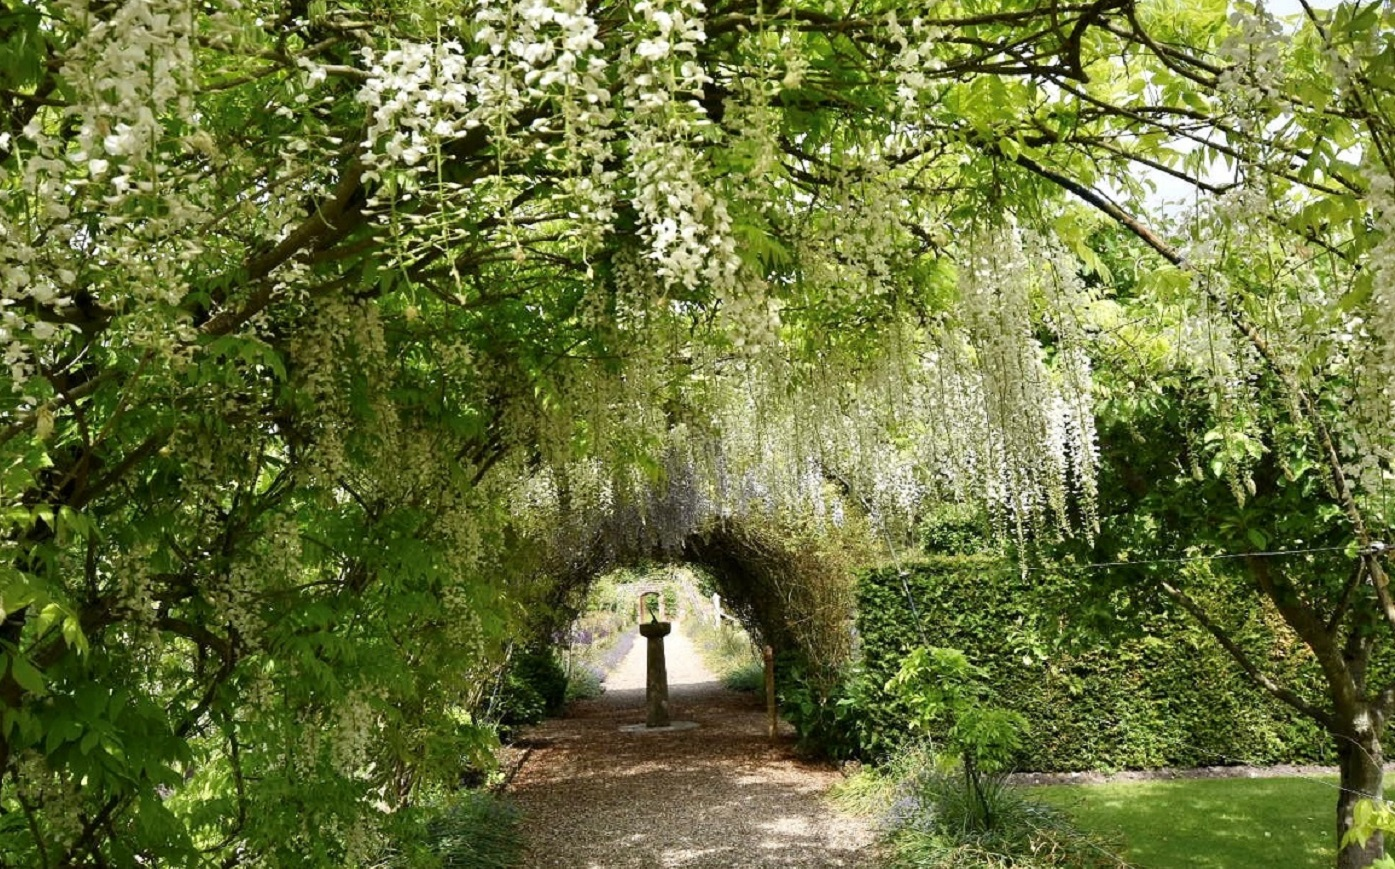 The gardens at Sledmere House, East Yorkshire